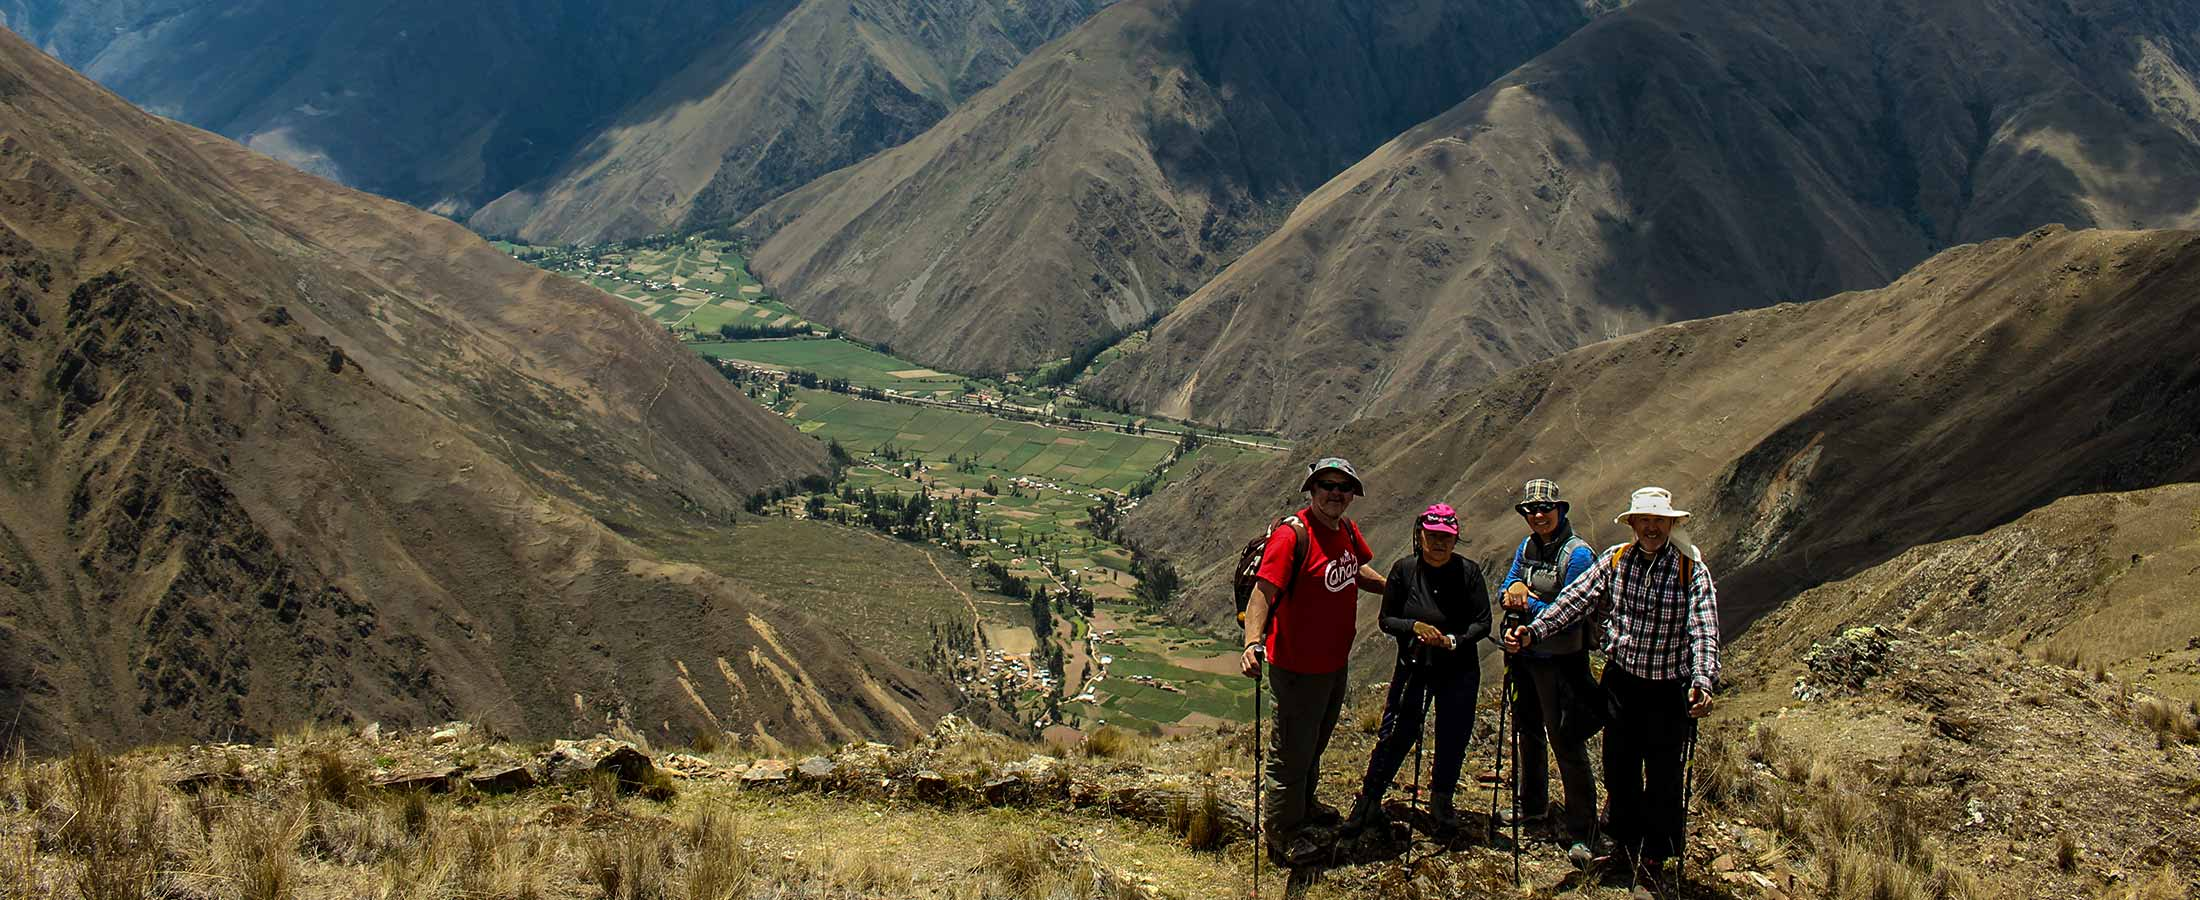 trek to cachicata Inca quarry trail in 1 day